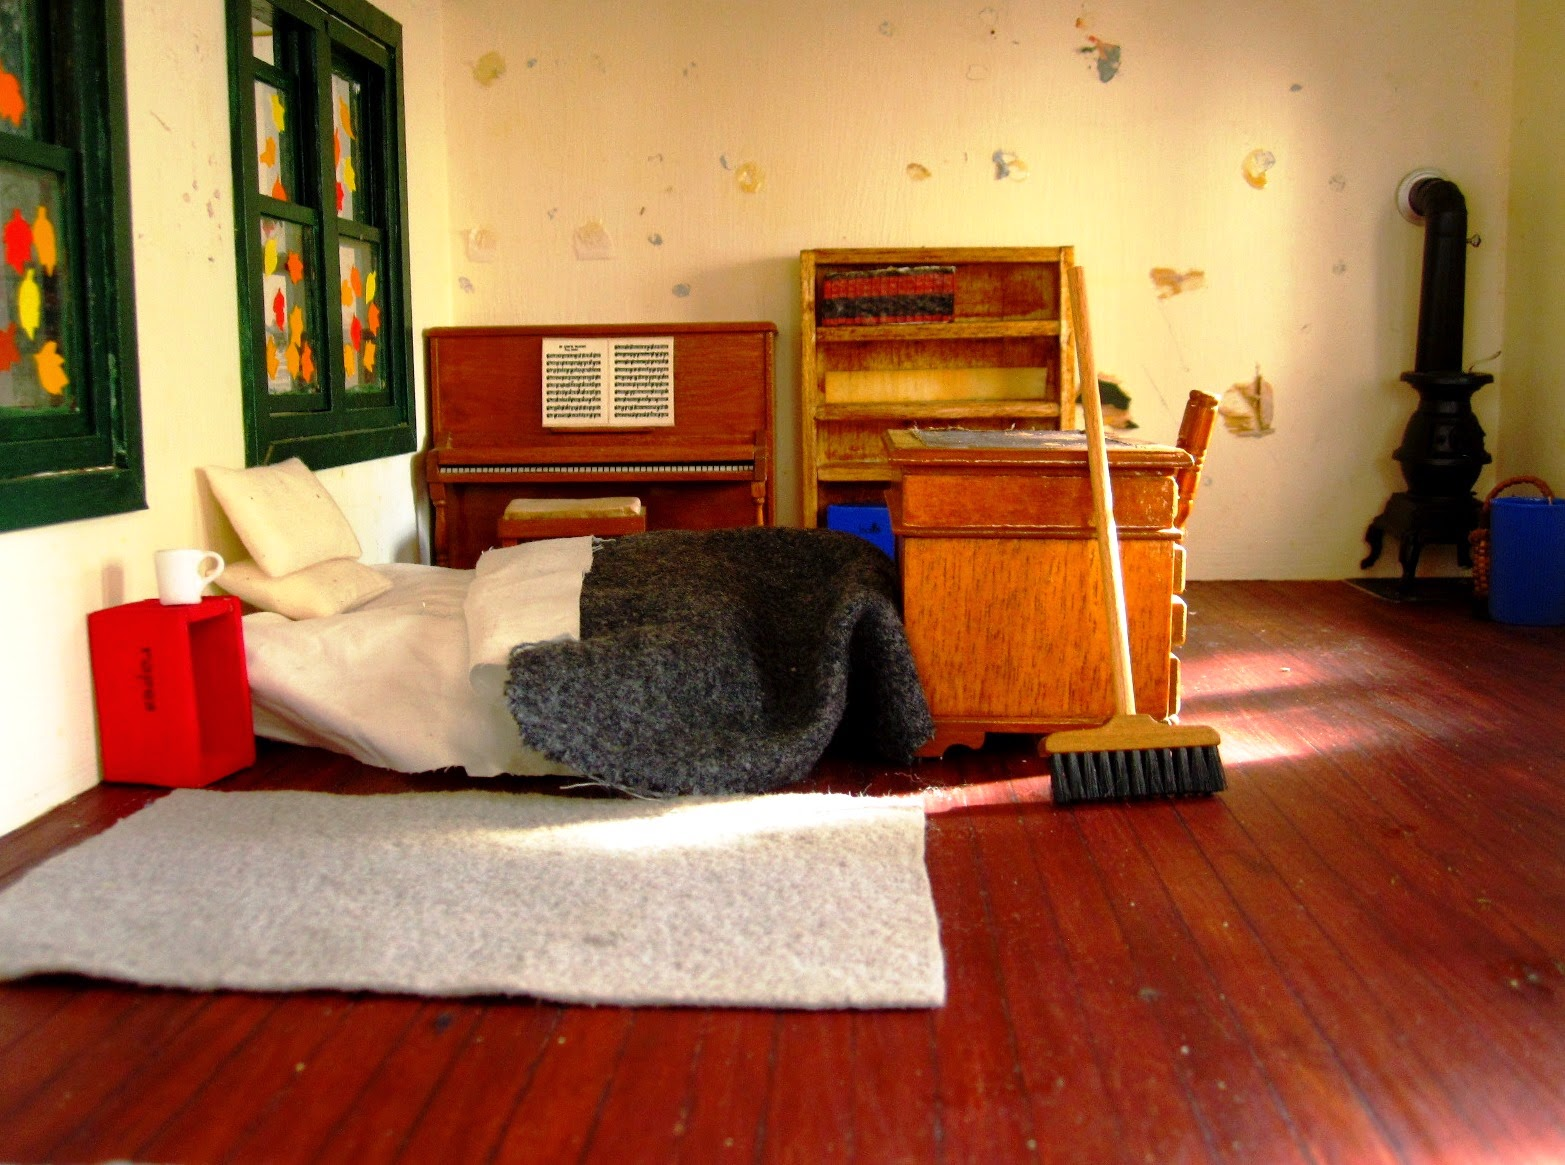 Miniature school house interior showing unmade bed on the floor with coffee mug next to it and a broom propped up at the end of it.